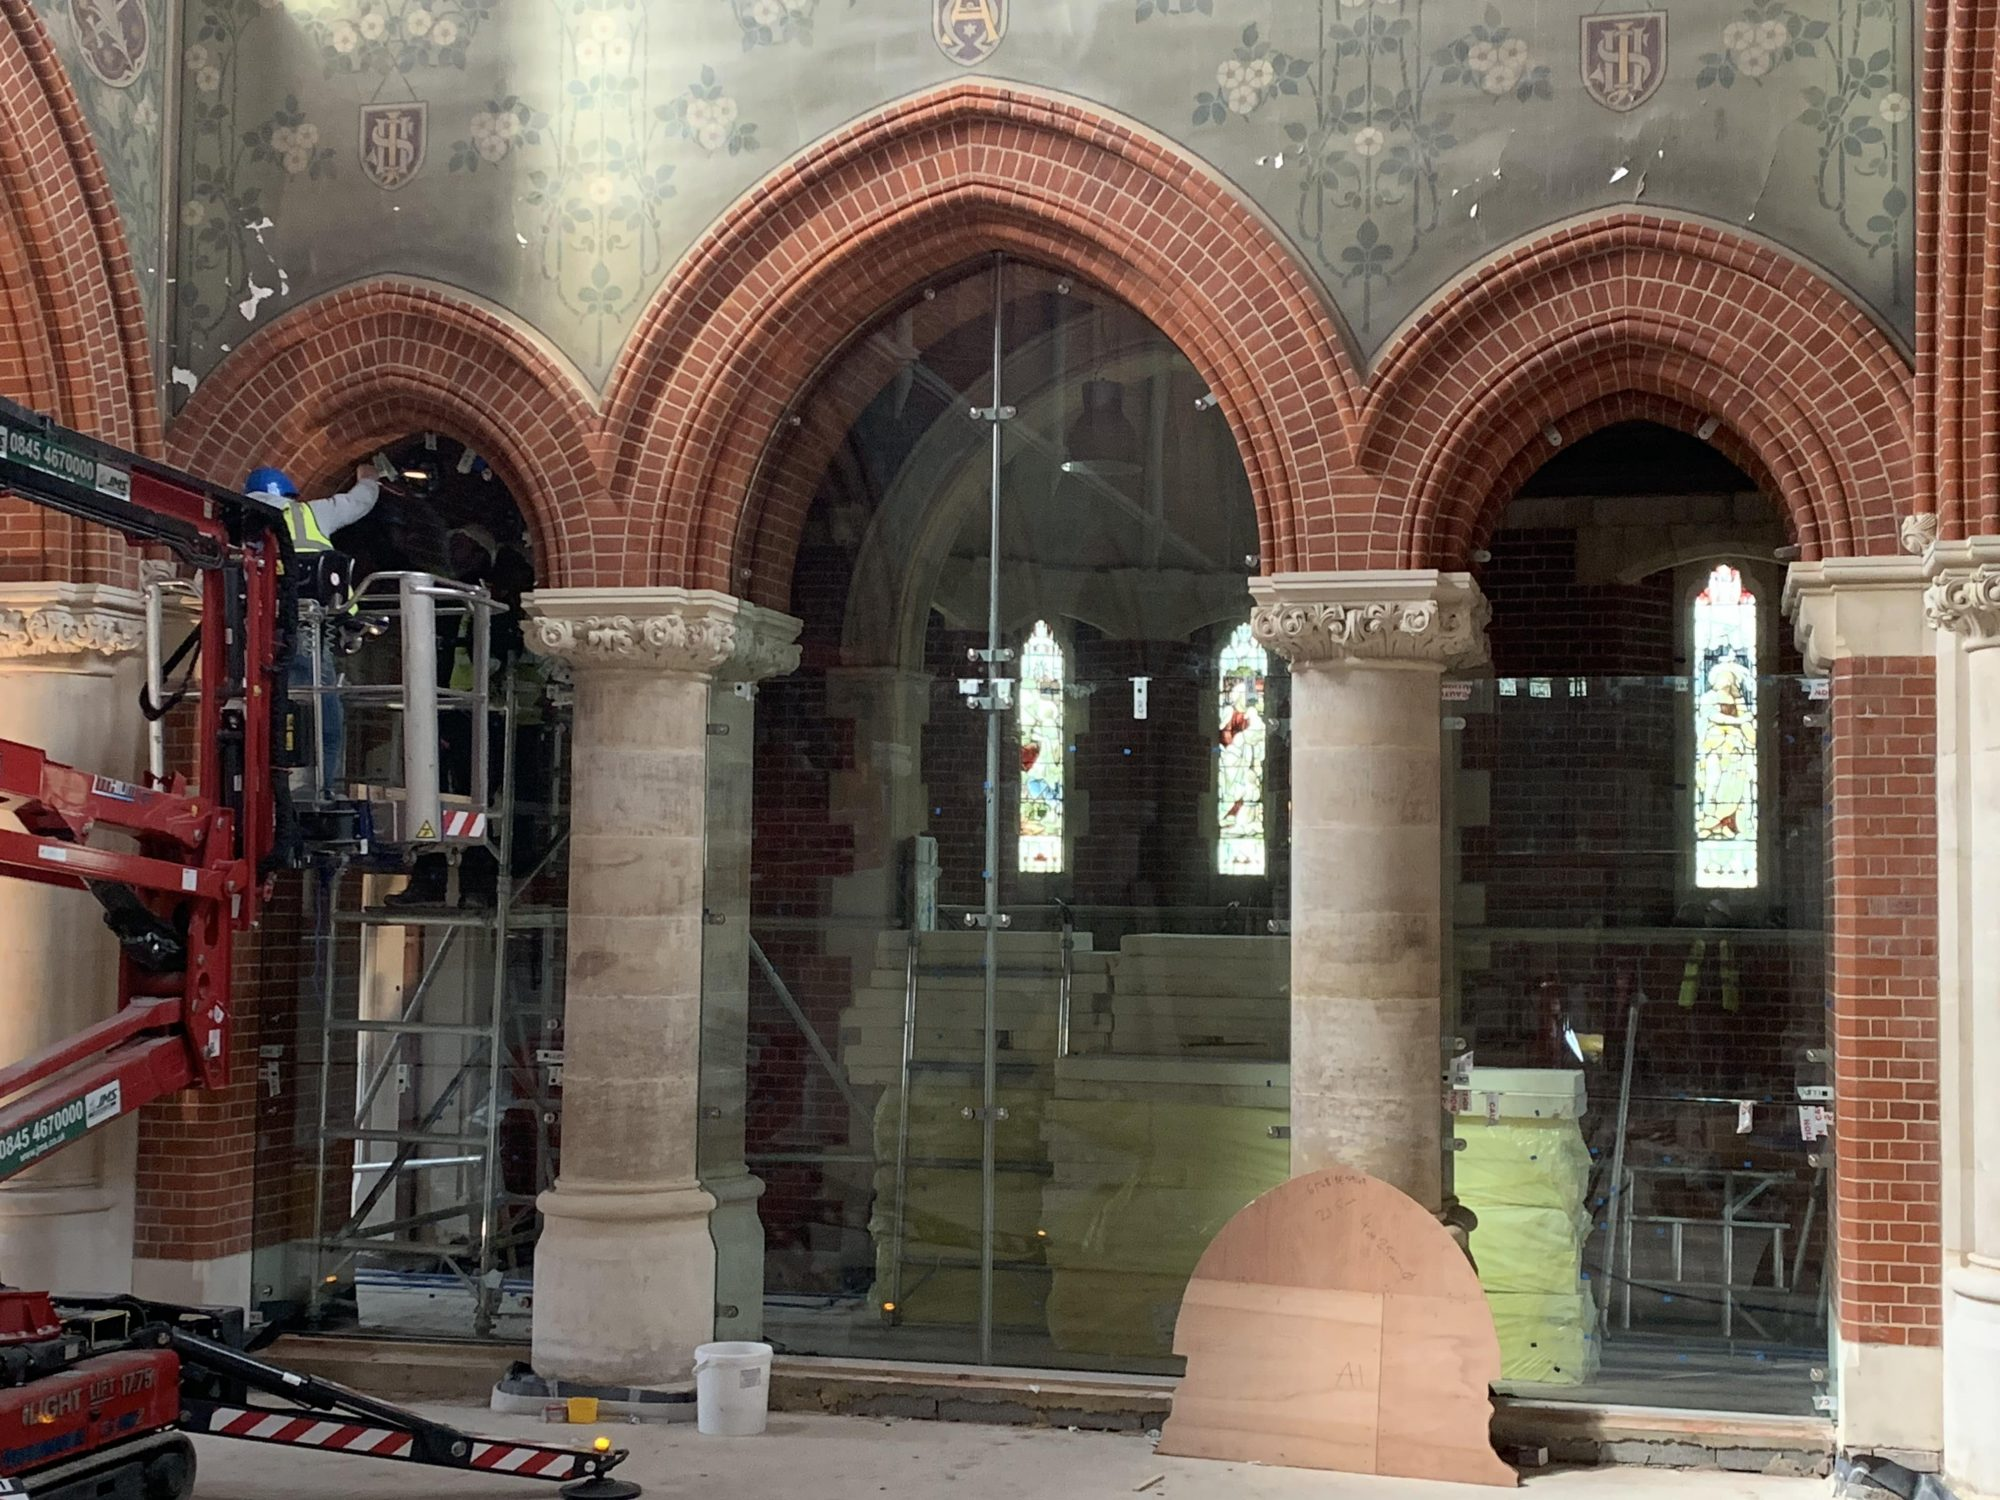 Church toughened glass walls in slough